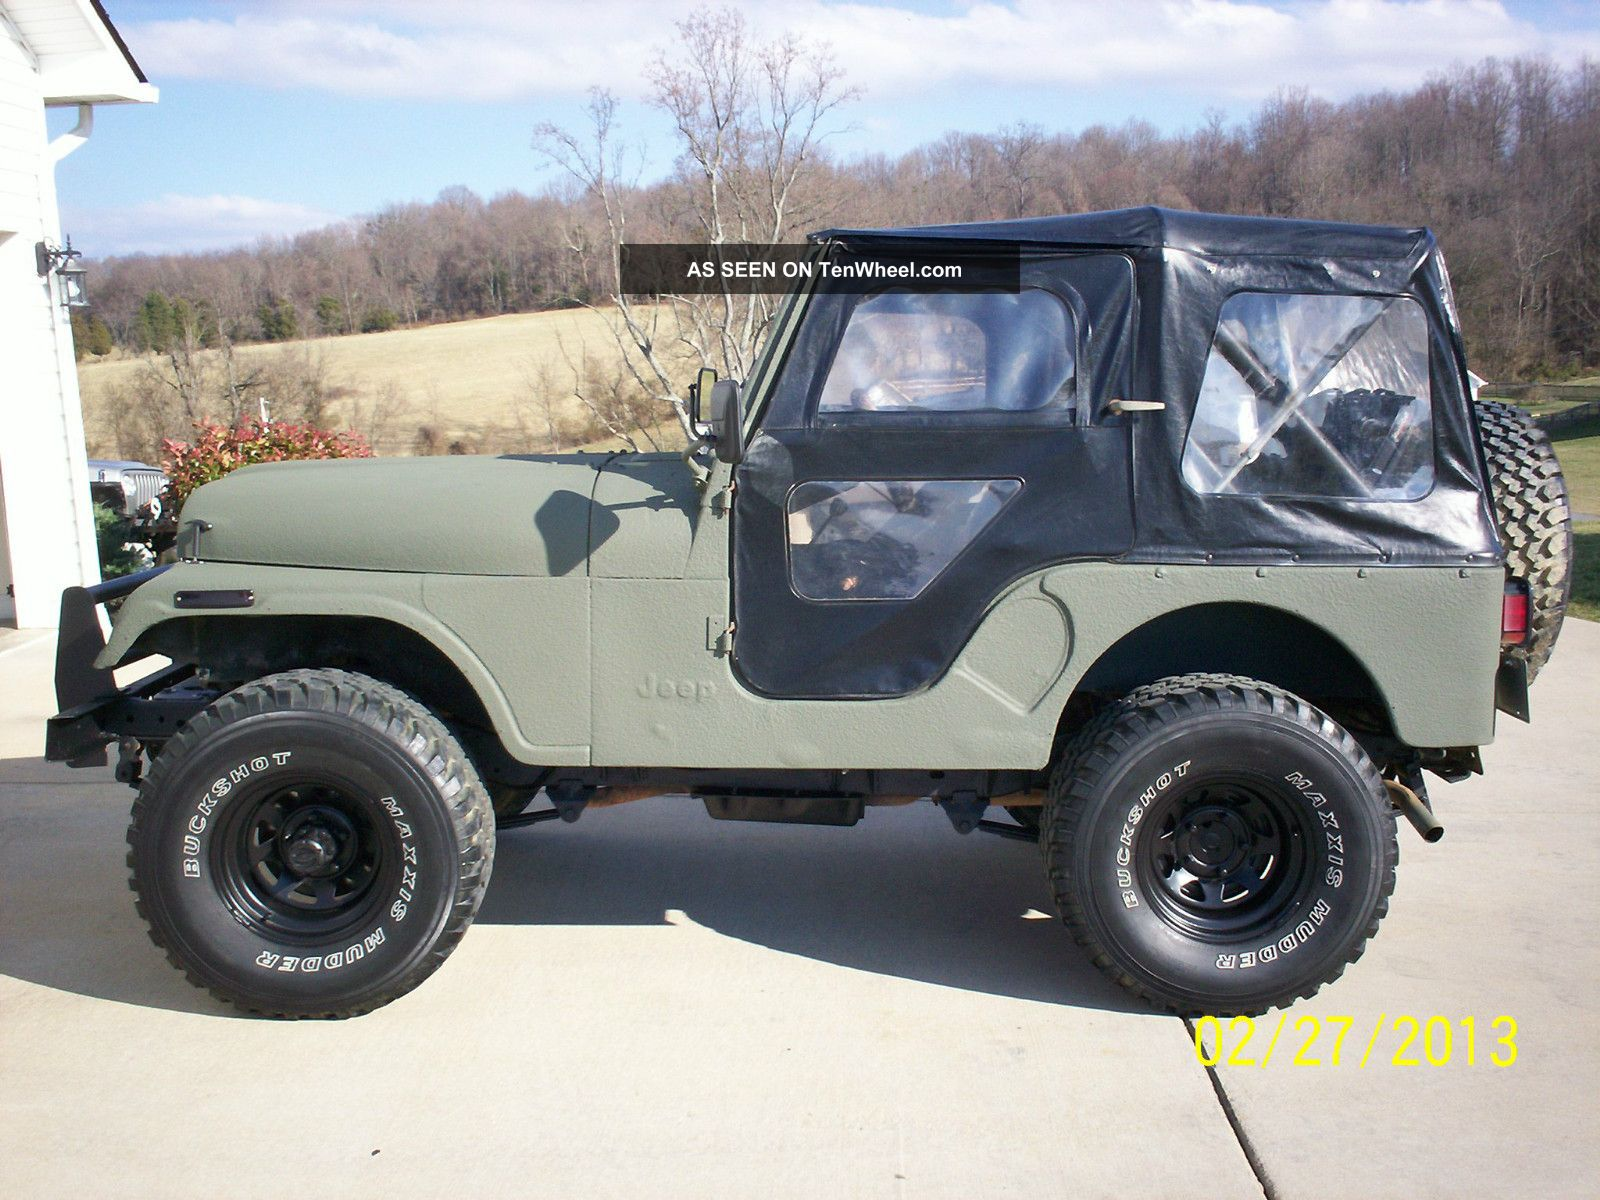 1977 Amc Jeep Cj5,  304 V8,  3 Speed,  Lifted,  33 ' S,  Bedlinered,  Great Daily Driver CJ photo